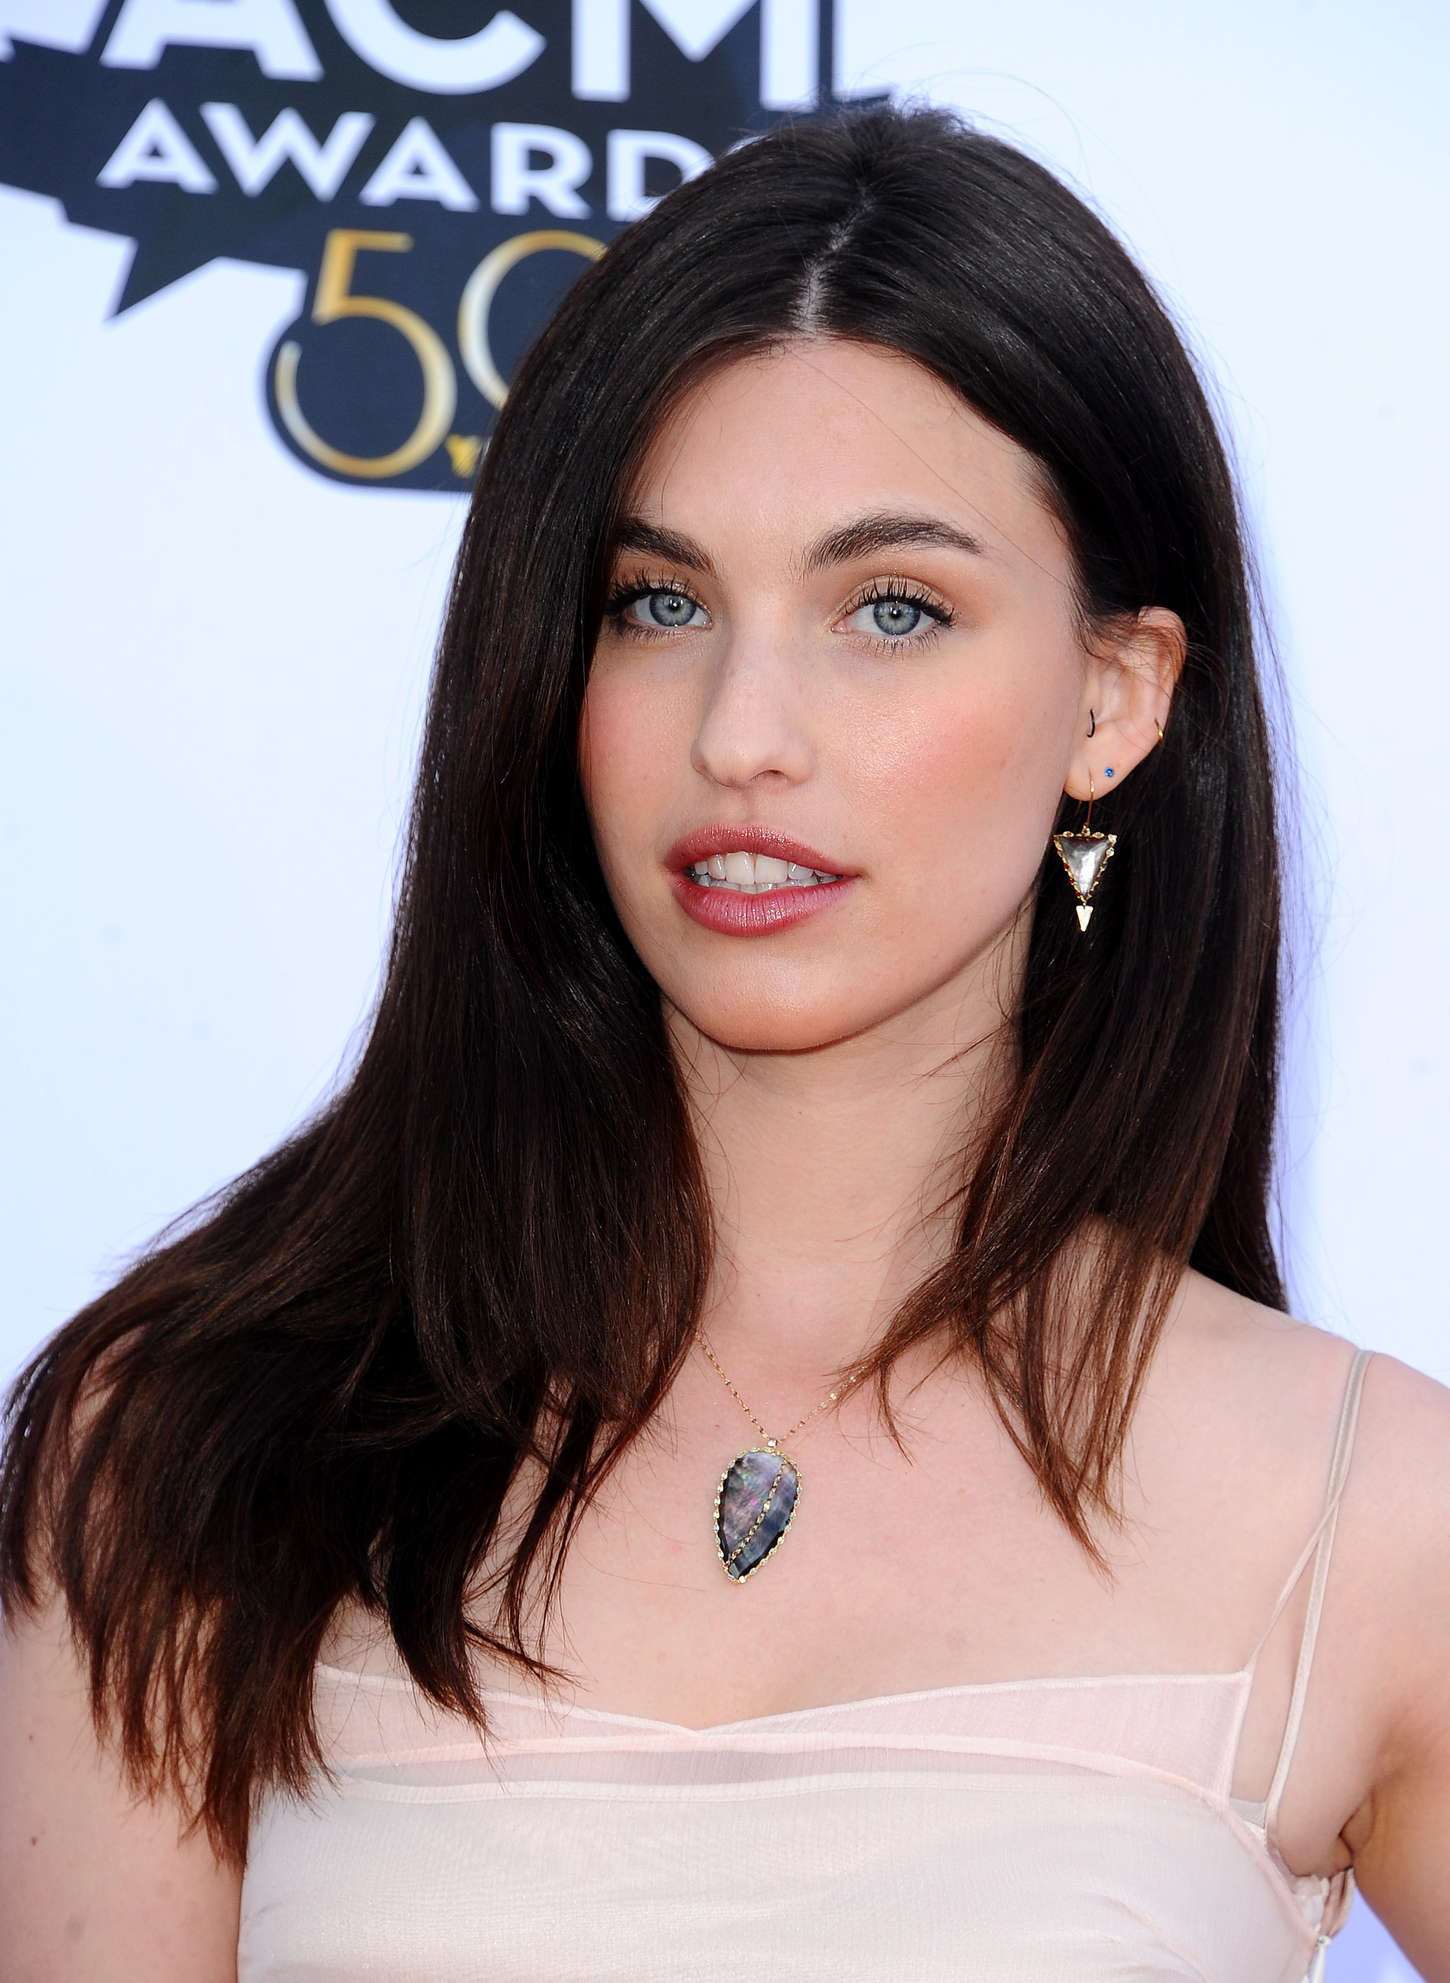 rainey qualley wikirainey qualley height, rainey qualley wikifeet, rainey qualley instagram, rainey qualley wiki, rainey qualley me and johnny cash, rainey qualley soundcloud, rainey qualley, rainey qualley actress, rainey qualley wikipedia, rainey qualley me and johnny cash lyrics, rainey qualley facebook, rainey qualley birthday, rainey qualley never mine, rainey qualley never mine lyrics, rainey qualley and keegan allen, rainey qualley singer, rainey qualley interview, rainey qualley age, rainey qualley music, rainey qualley feet